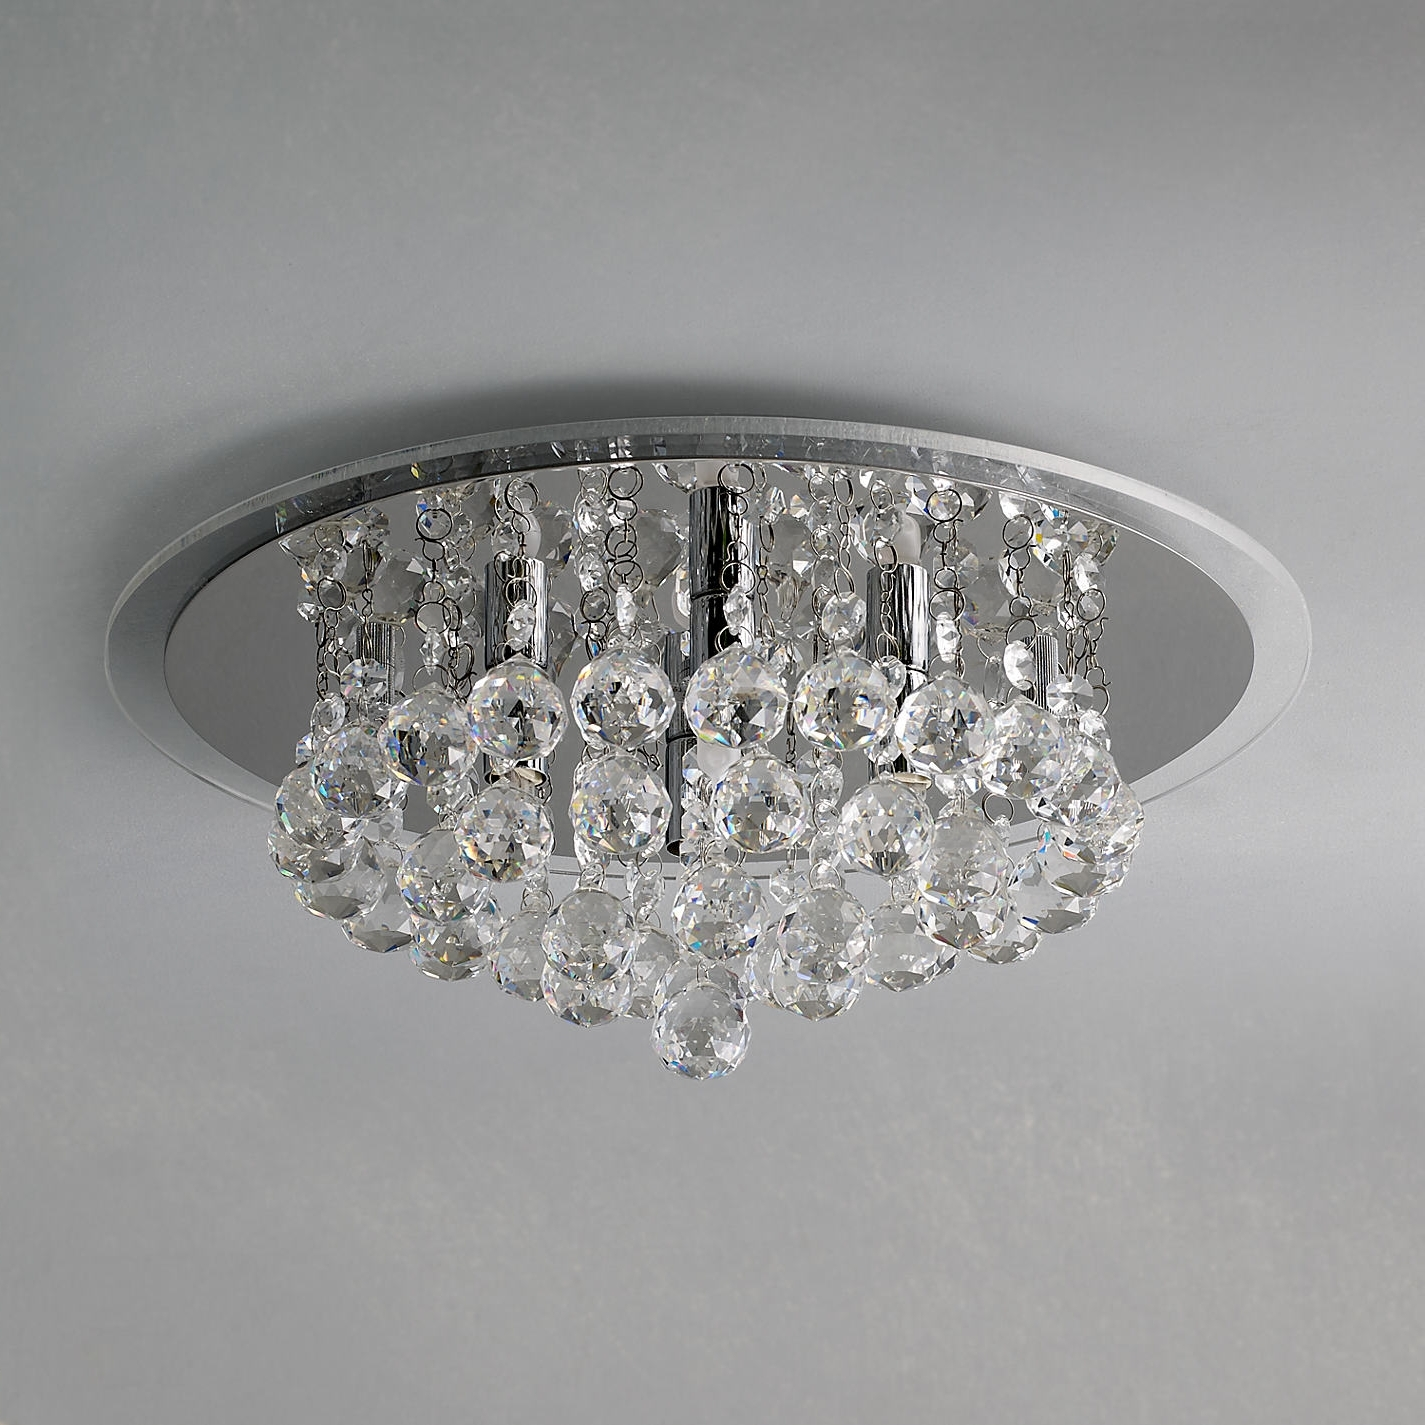 Flush Chandelier Ceiling Lights With Regard To Most Recently Released John Lewis Belinda Flush Ceiling Light Chrome Crystal Ceiling Lights (View 14 of 20)